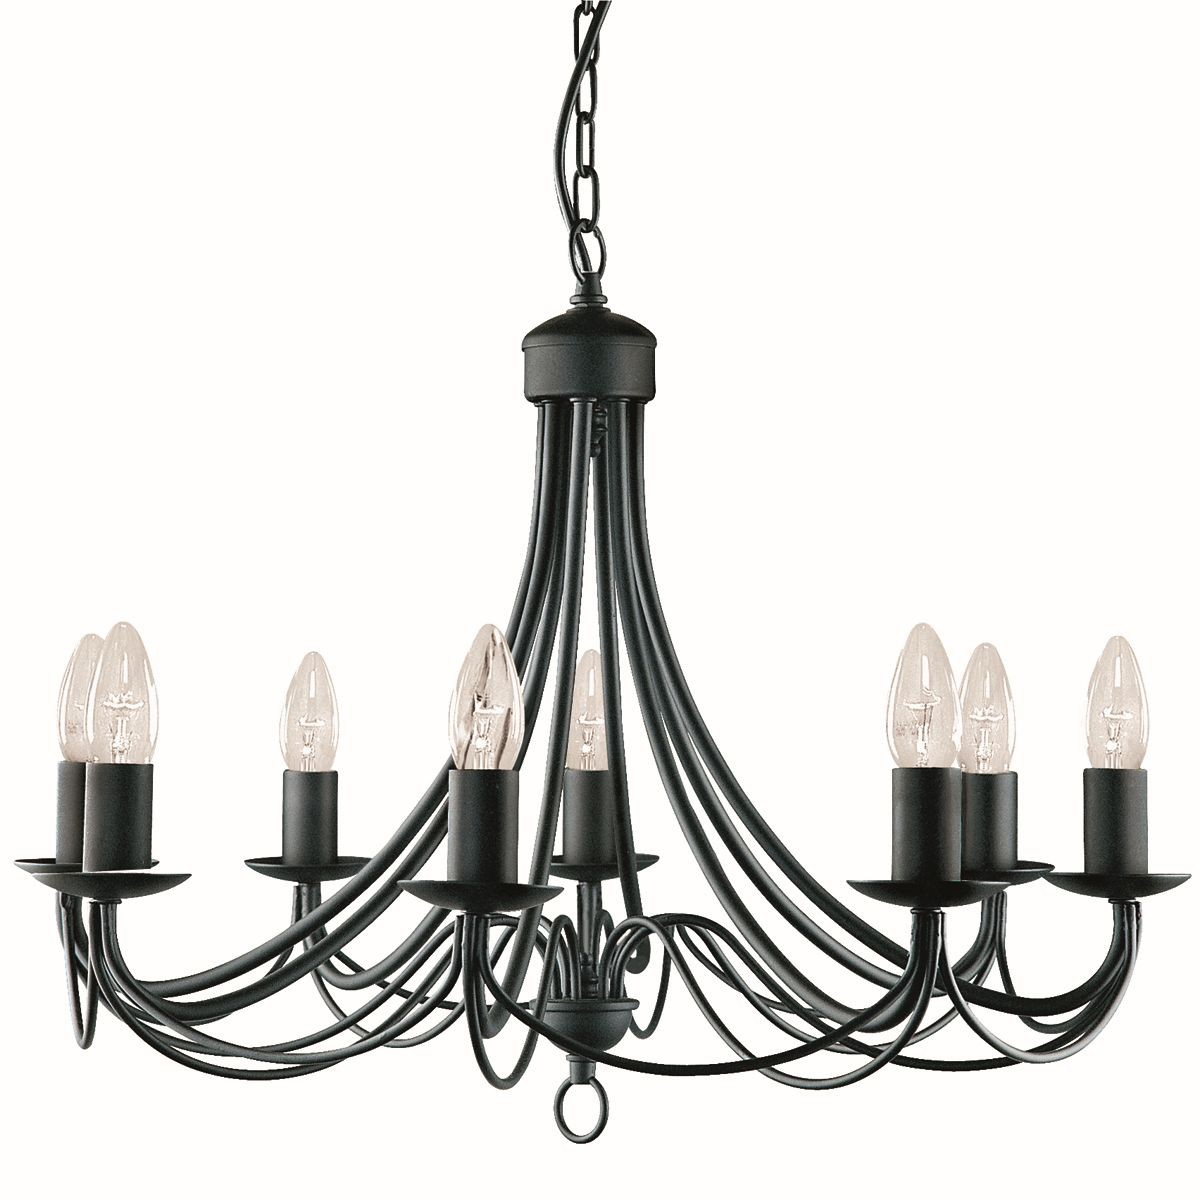 maypole ceiling light 8 arm matt black traditional ceiling lights ceiling lights. Black Bedroom Furniture Sets. Home Design Ideas